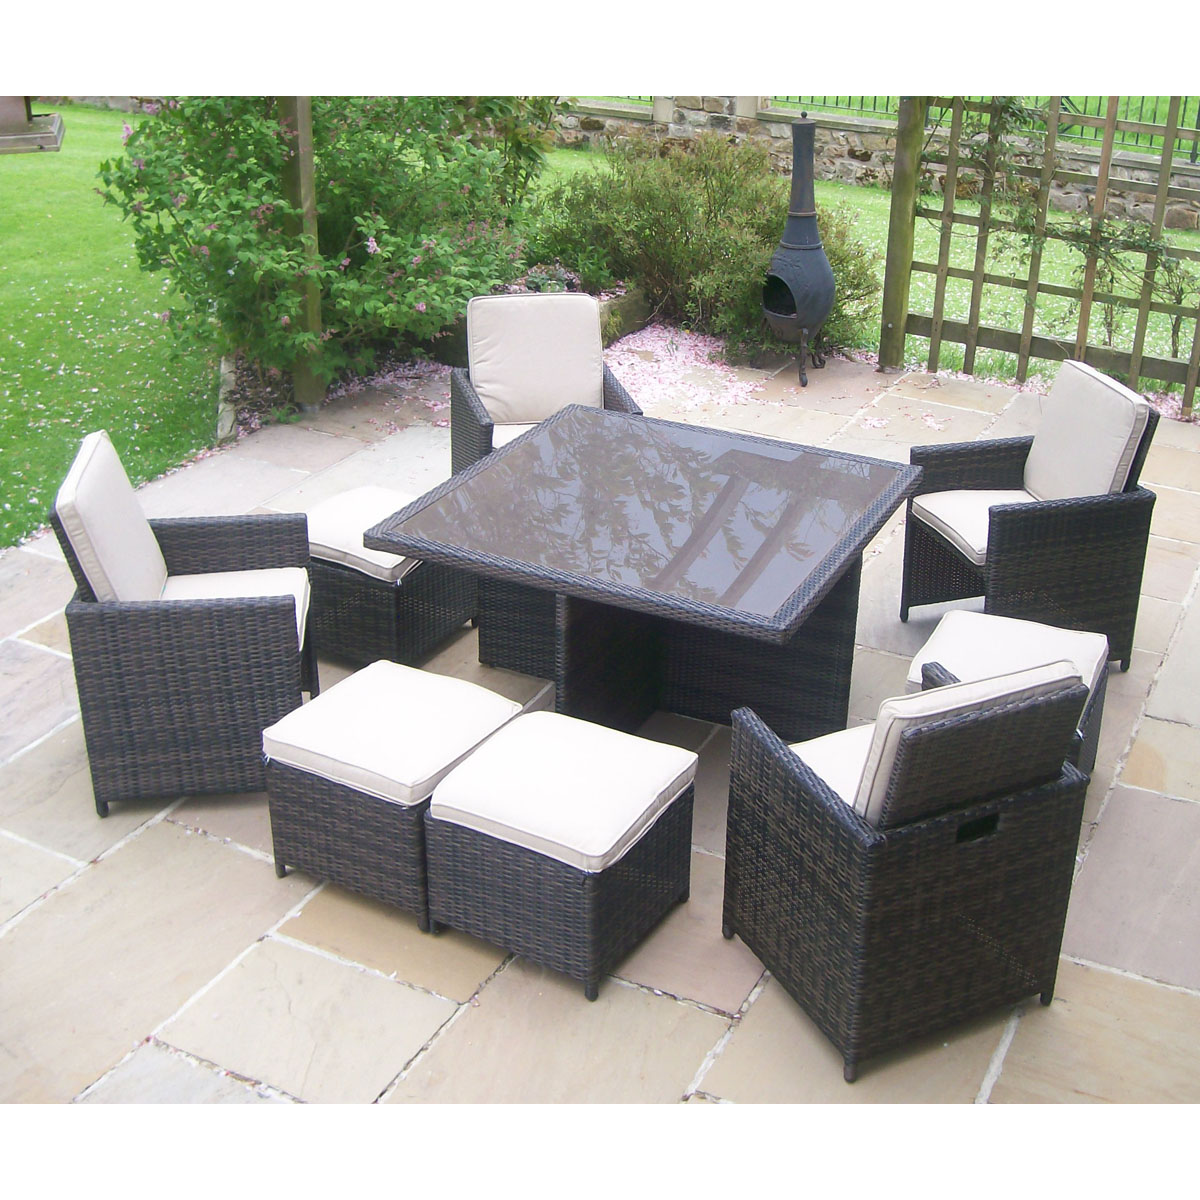 Value Accessory Store - Rattan Wicker Garden Furniture Table 4 Chair ...